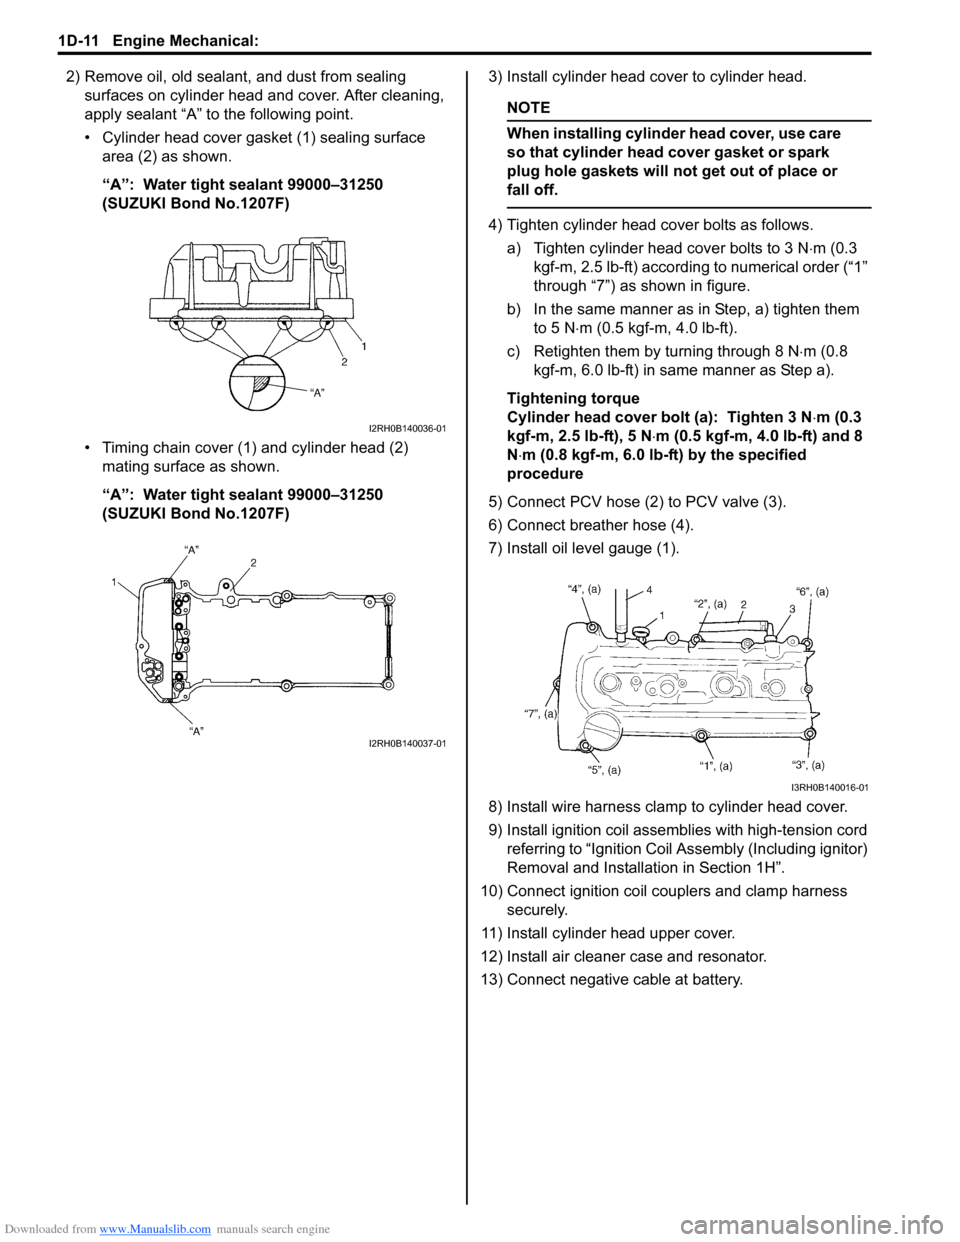 SUZUKI SWIFT 2008 2.G Service Workshop Manual Downloaded from www.Manualslib.com manuals search engine 1D-11 Engine Mechanical:  2) Remove oil, old sealant, and dust from sealing surfaces on cylinder head and cover. After cleaning,  apply sealant